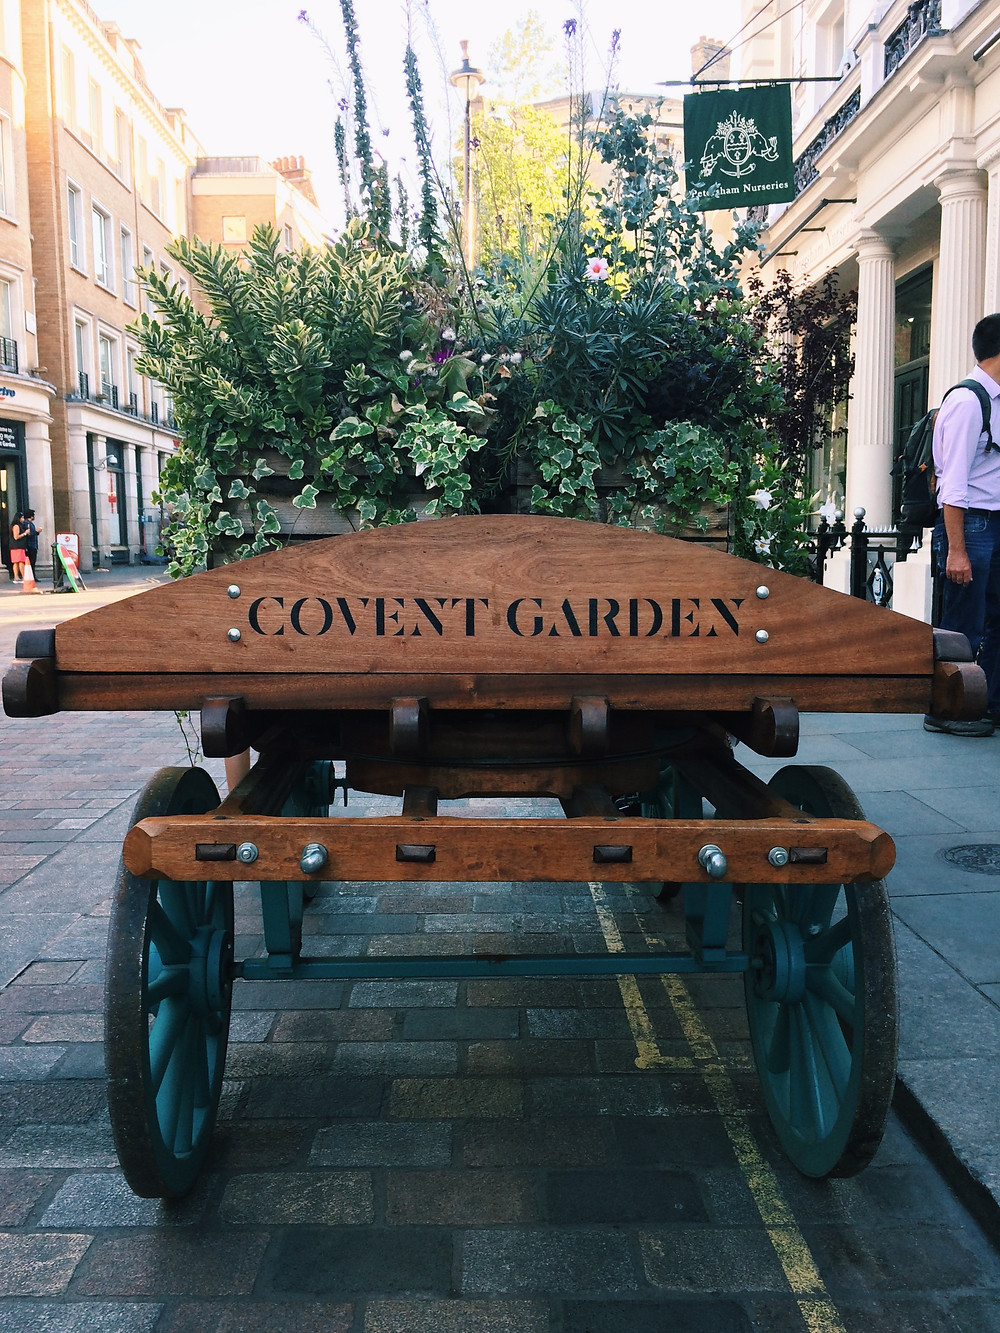 Floral display in Covent Garden, London, Written by Han